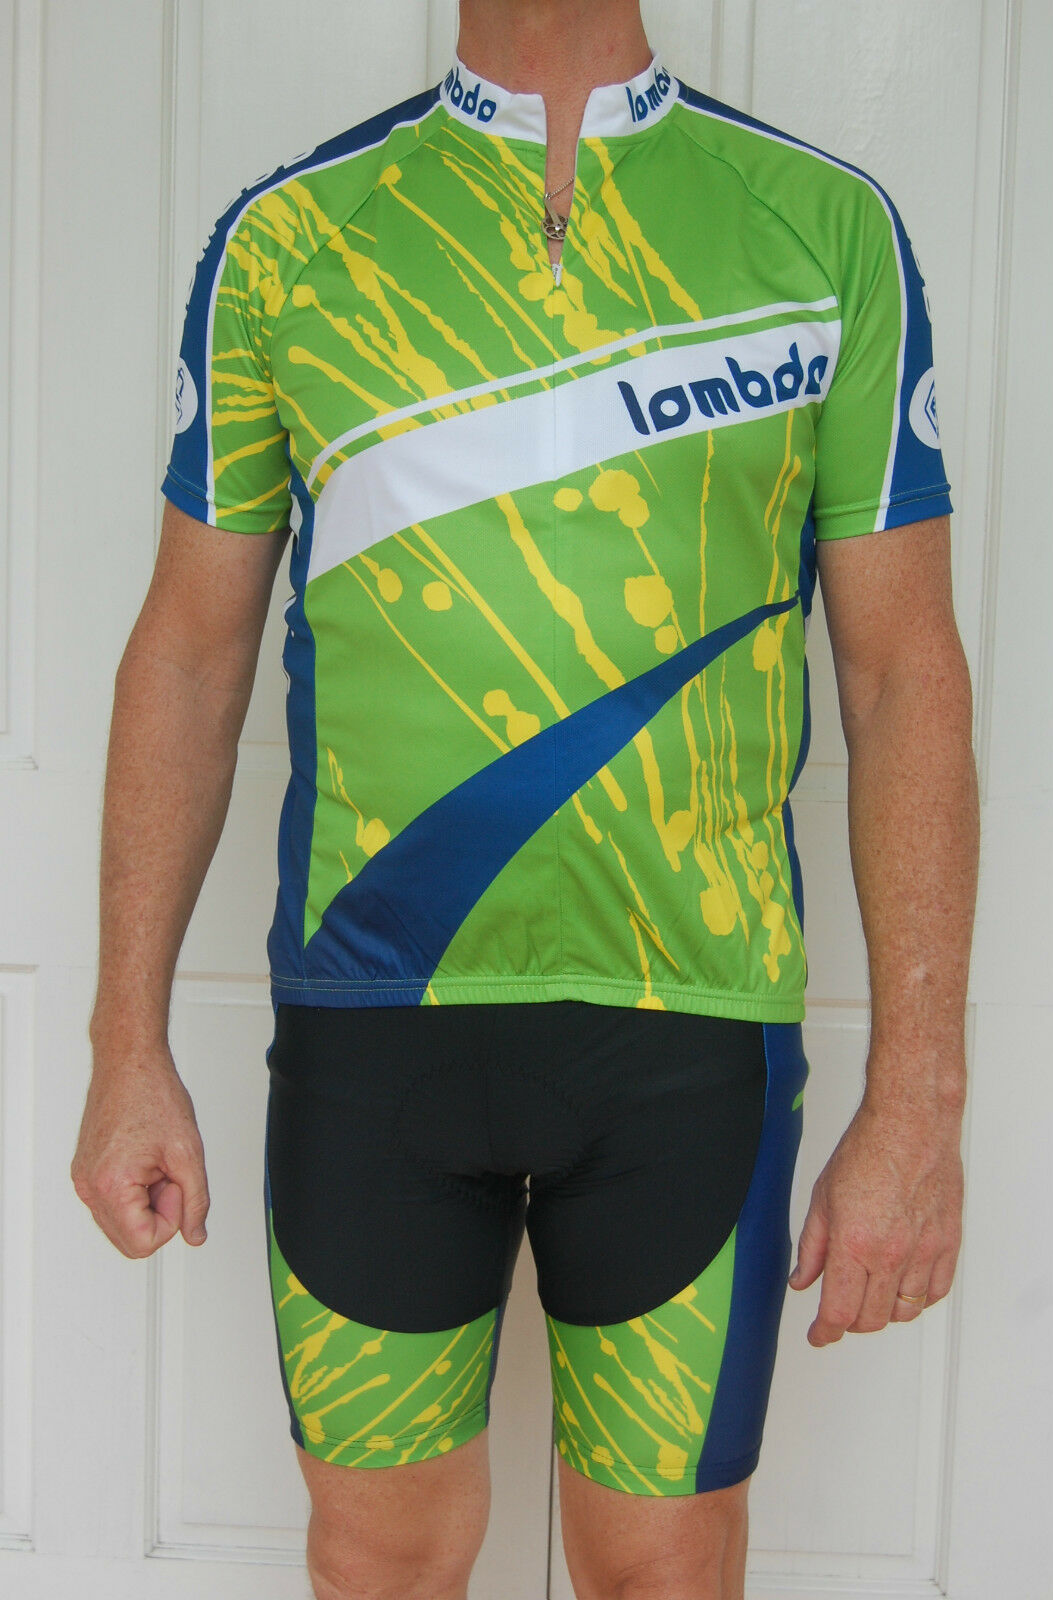 Unisex cycling jersey & knicks pants set (green, blue, yellow & white)